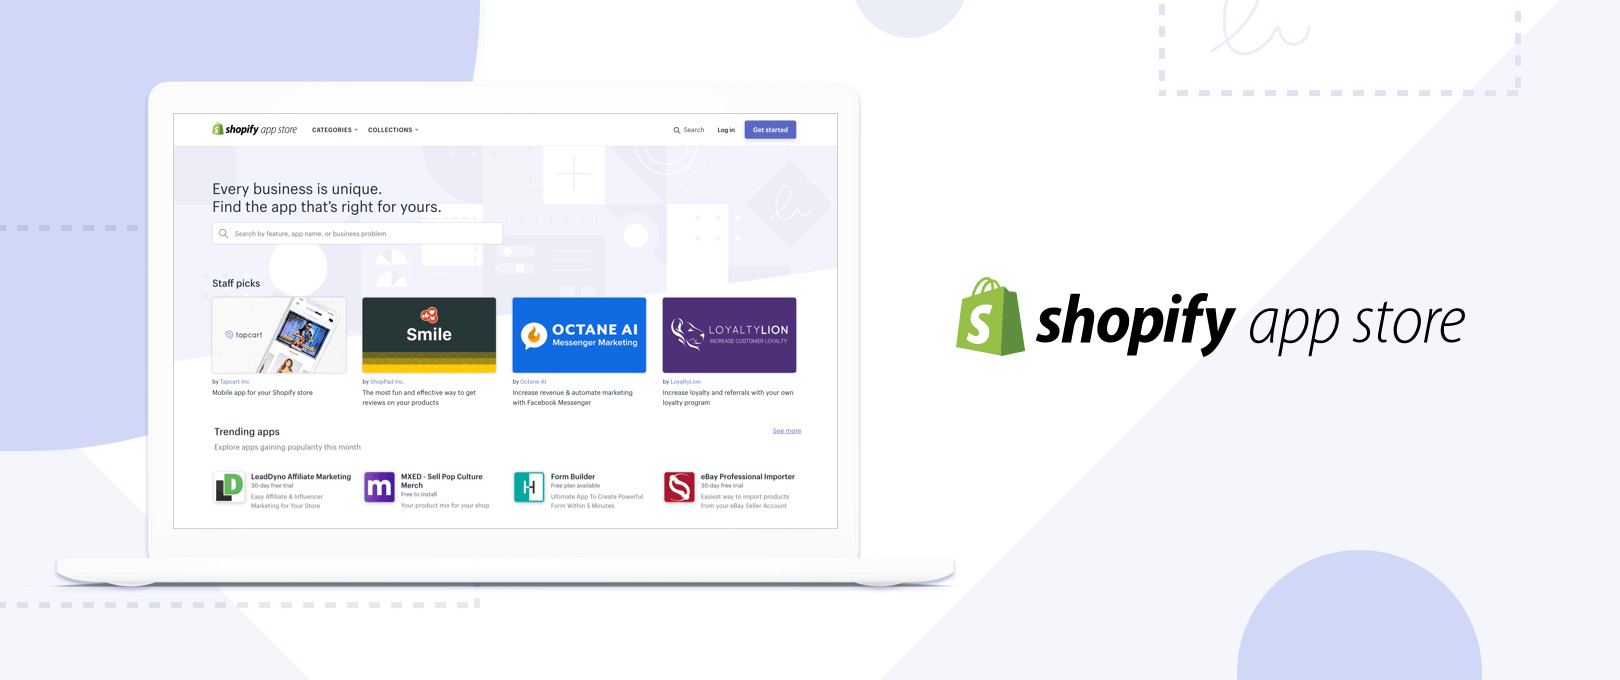 Shopify Dropshipping Apps: Guide for Savvy Resellers